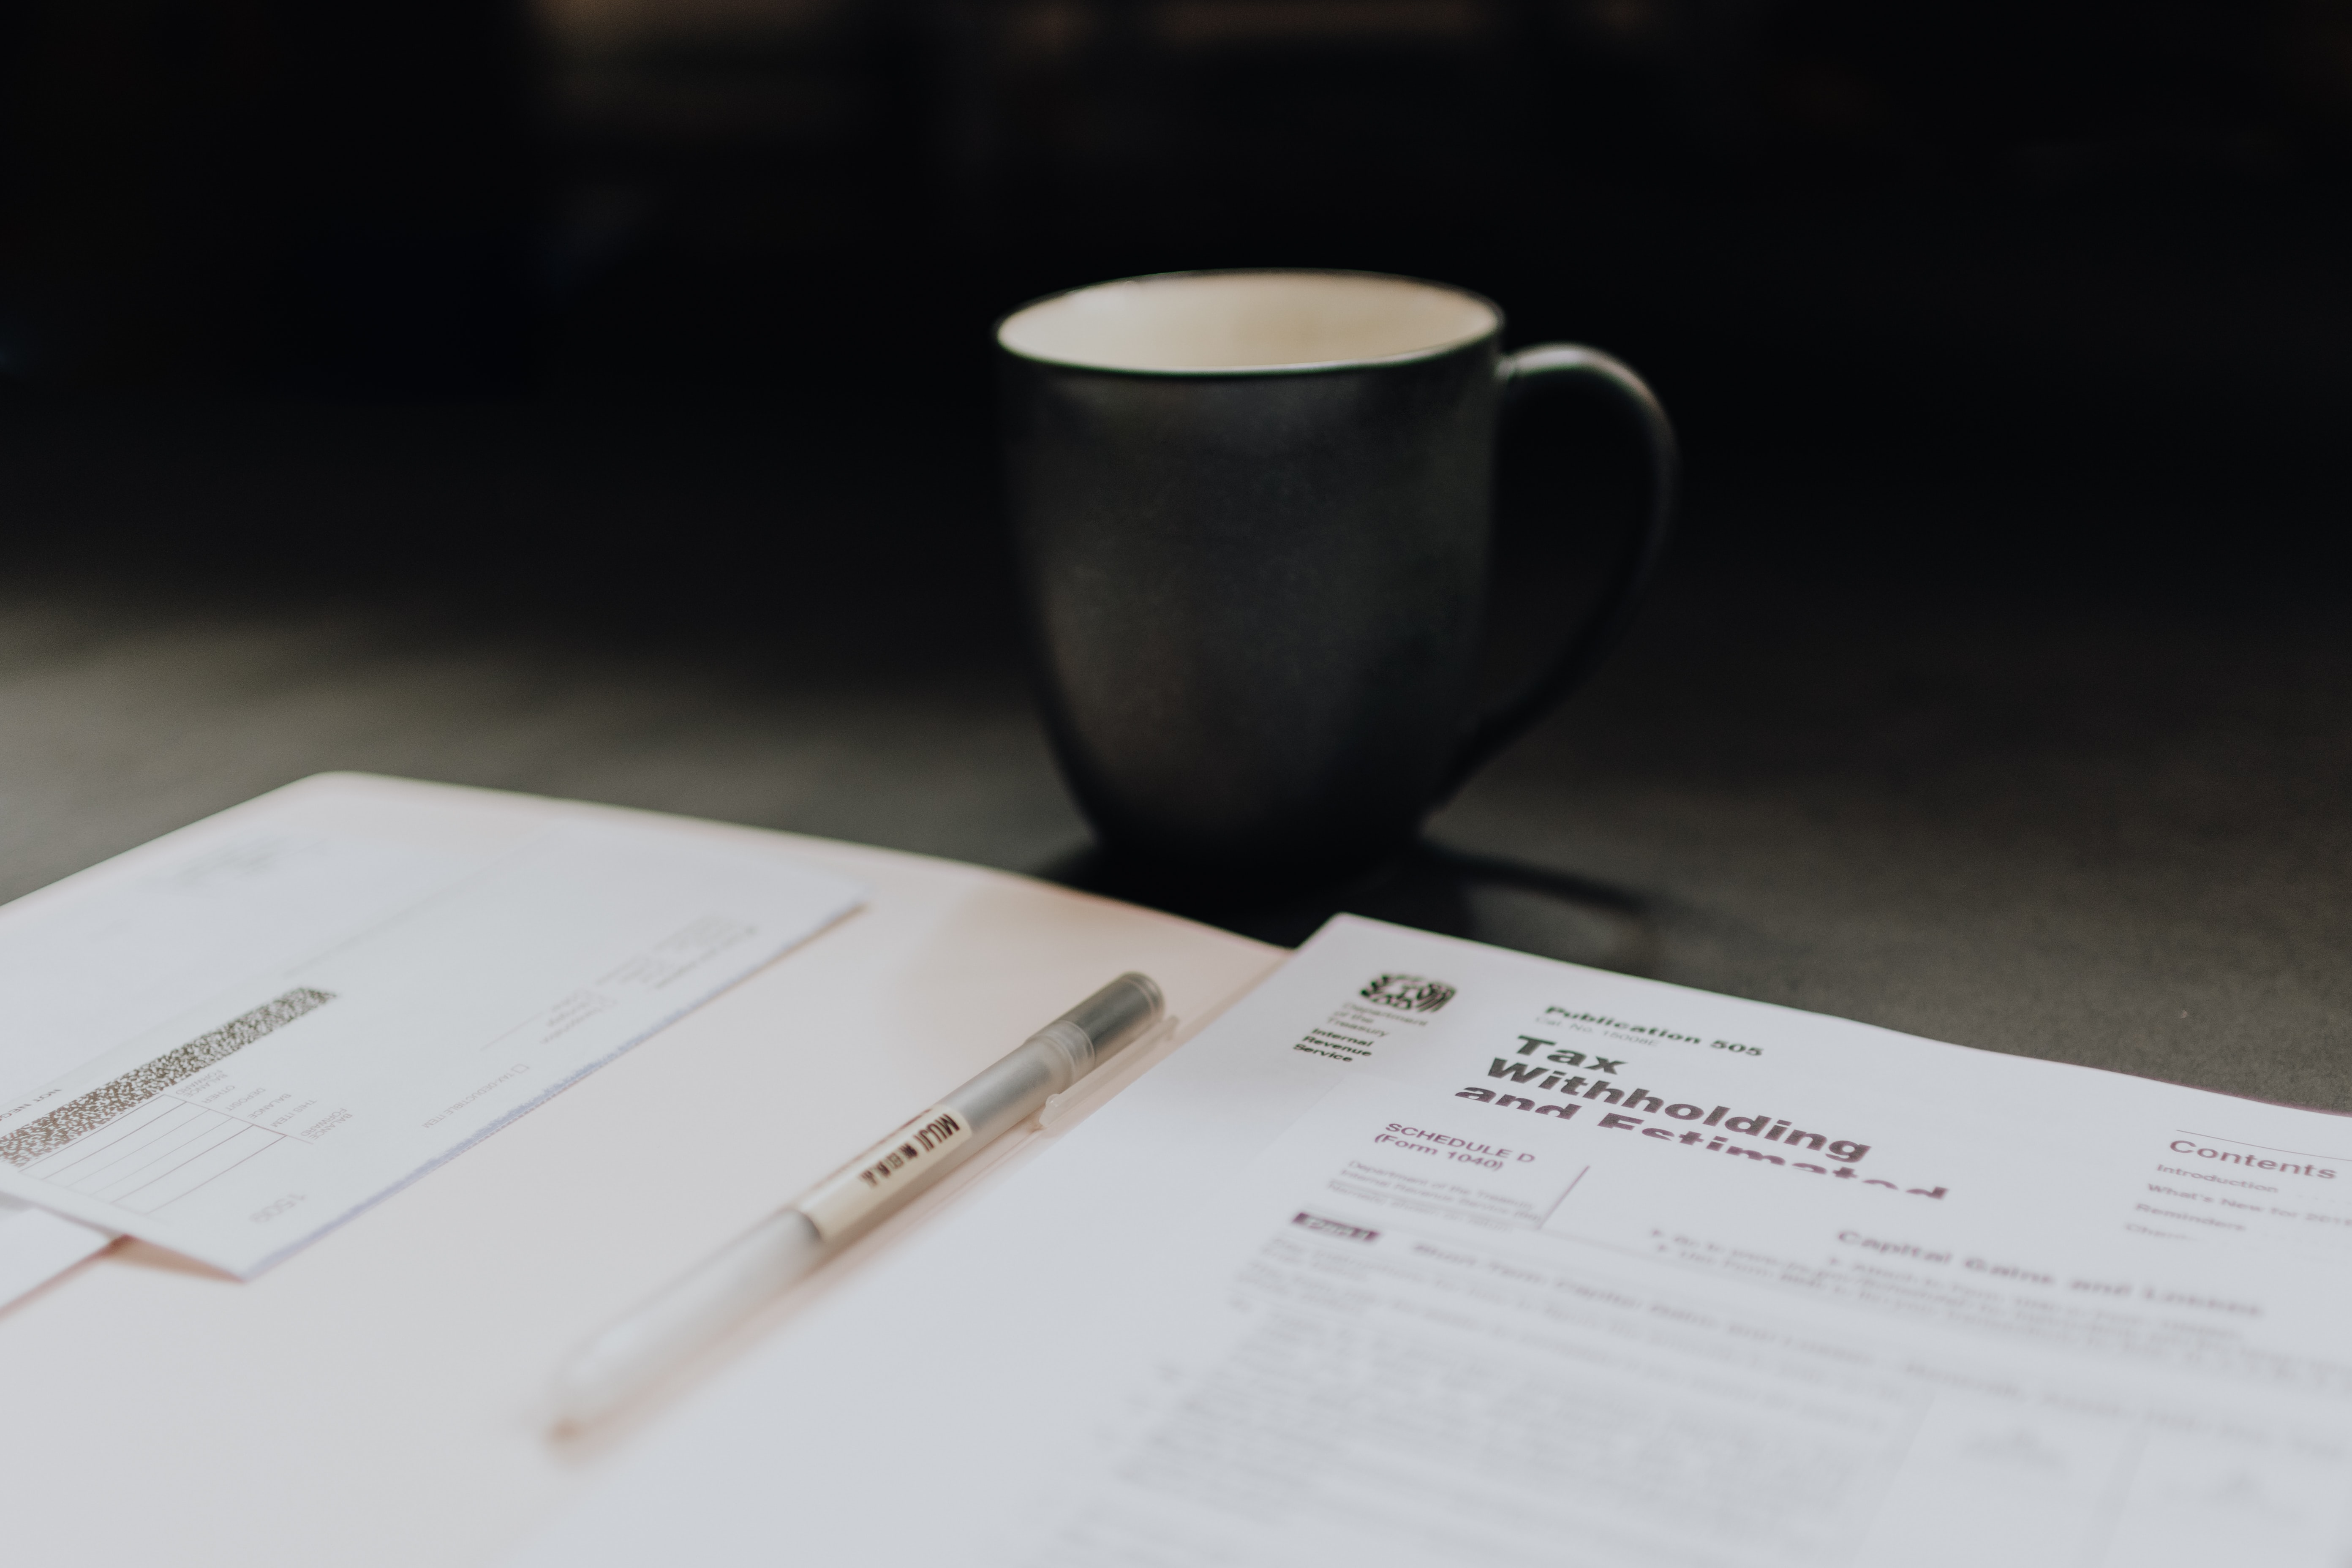 When should I open an LLC for my newsletter?